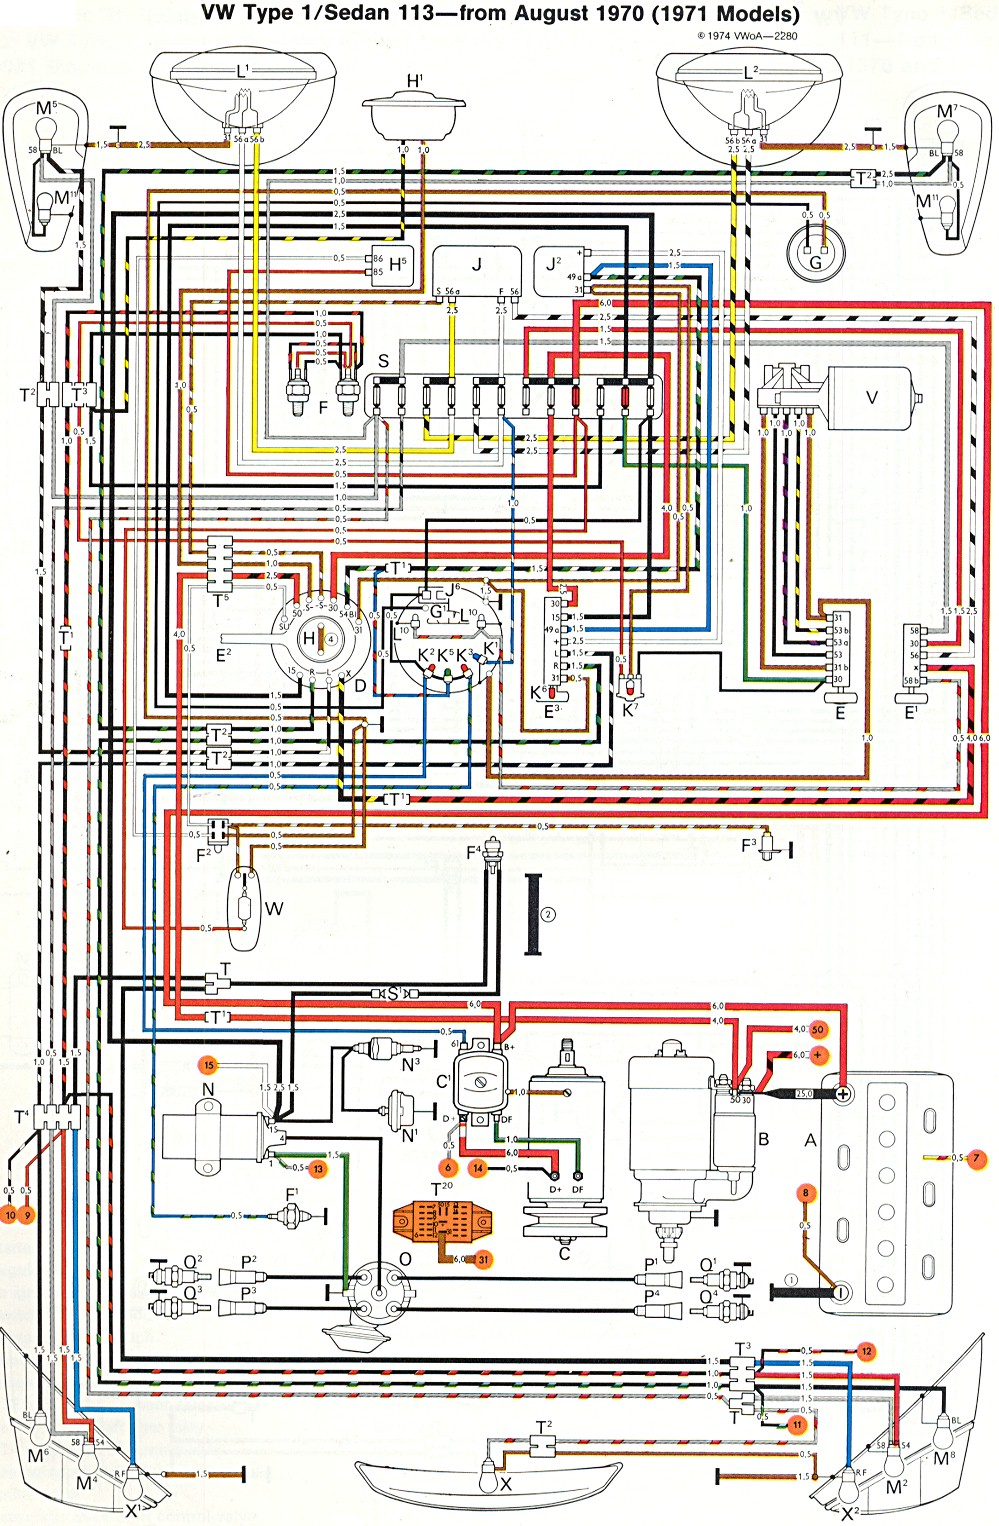 bug_super_71 1971 super beetle wiring diagram thegoldenbug com 1973 vw super beetle wiring diagram at sewacar.co